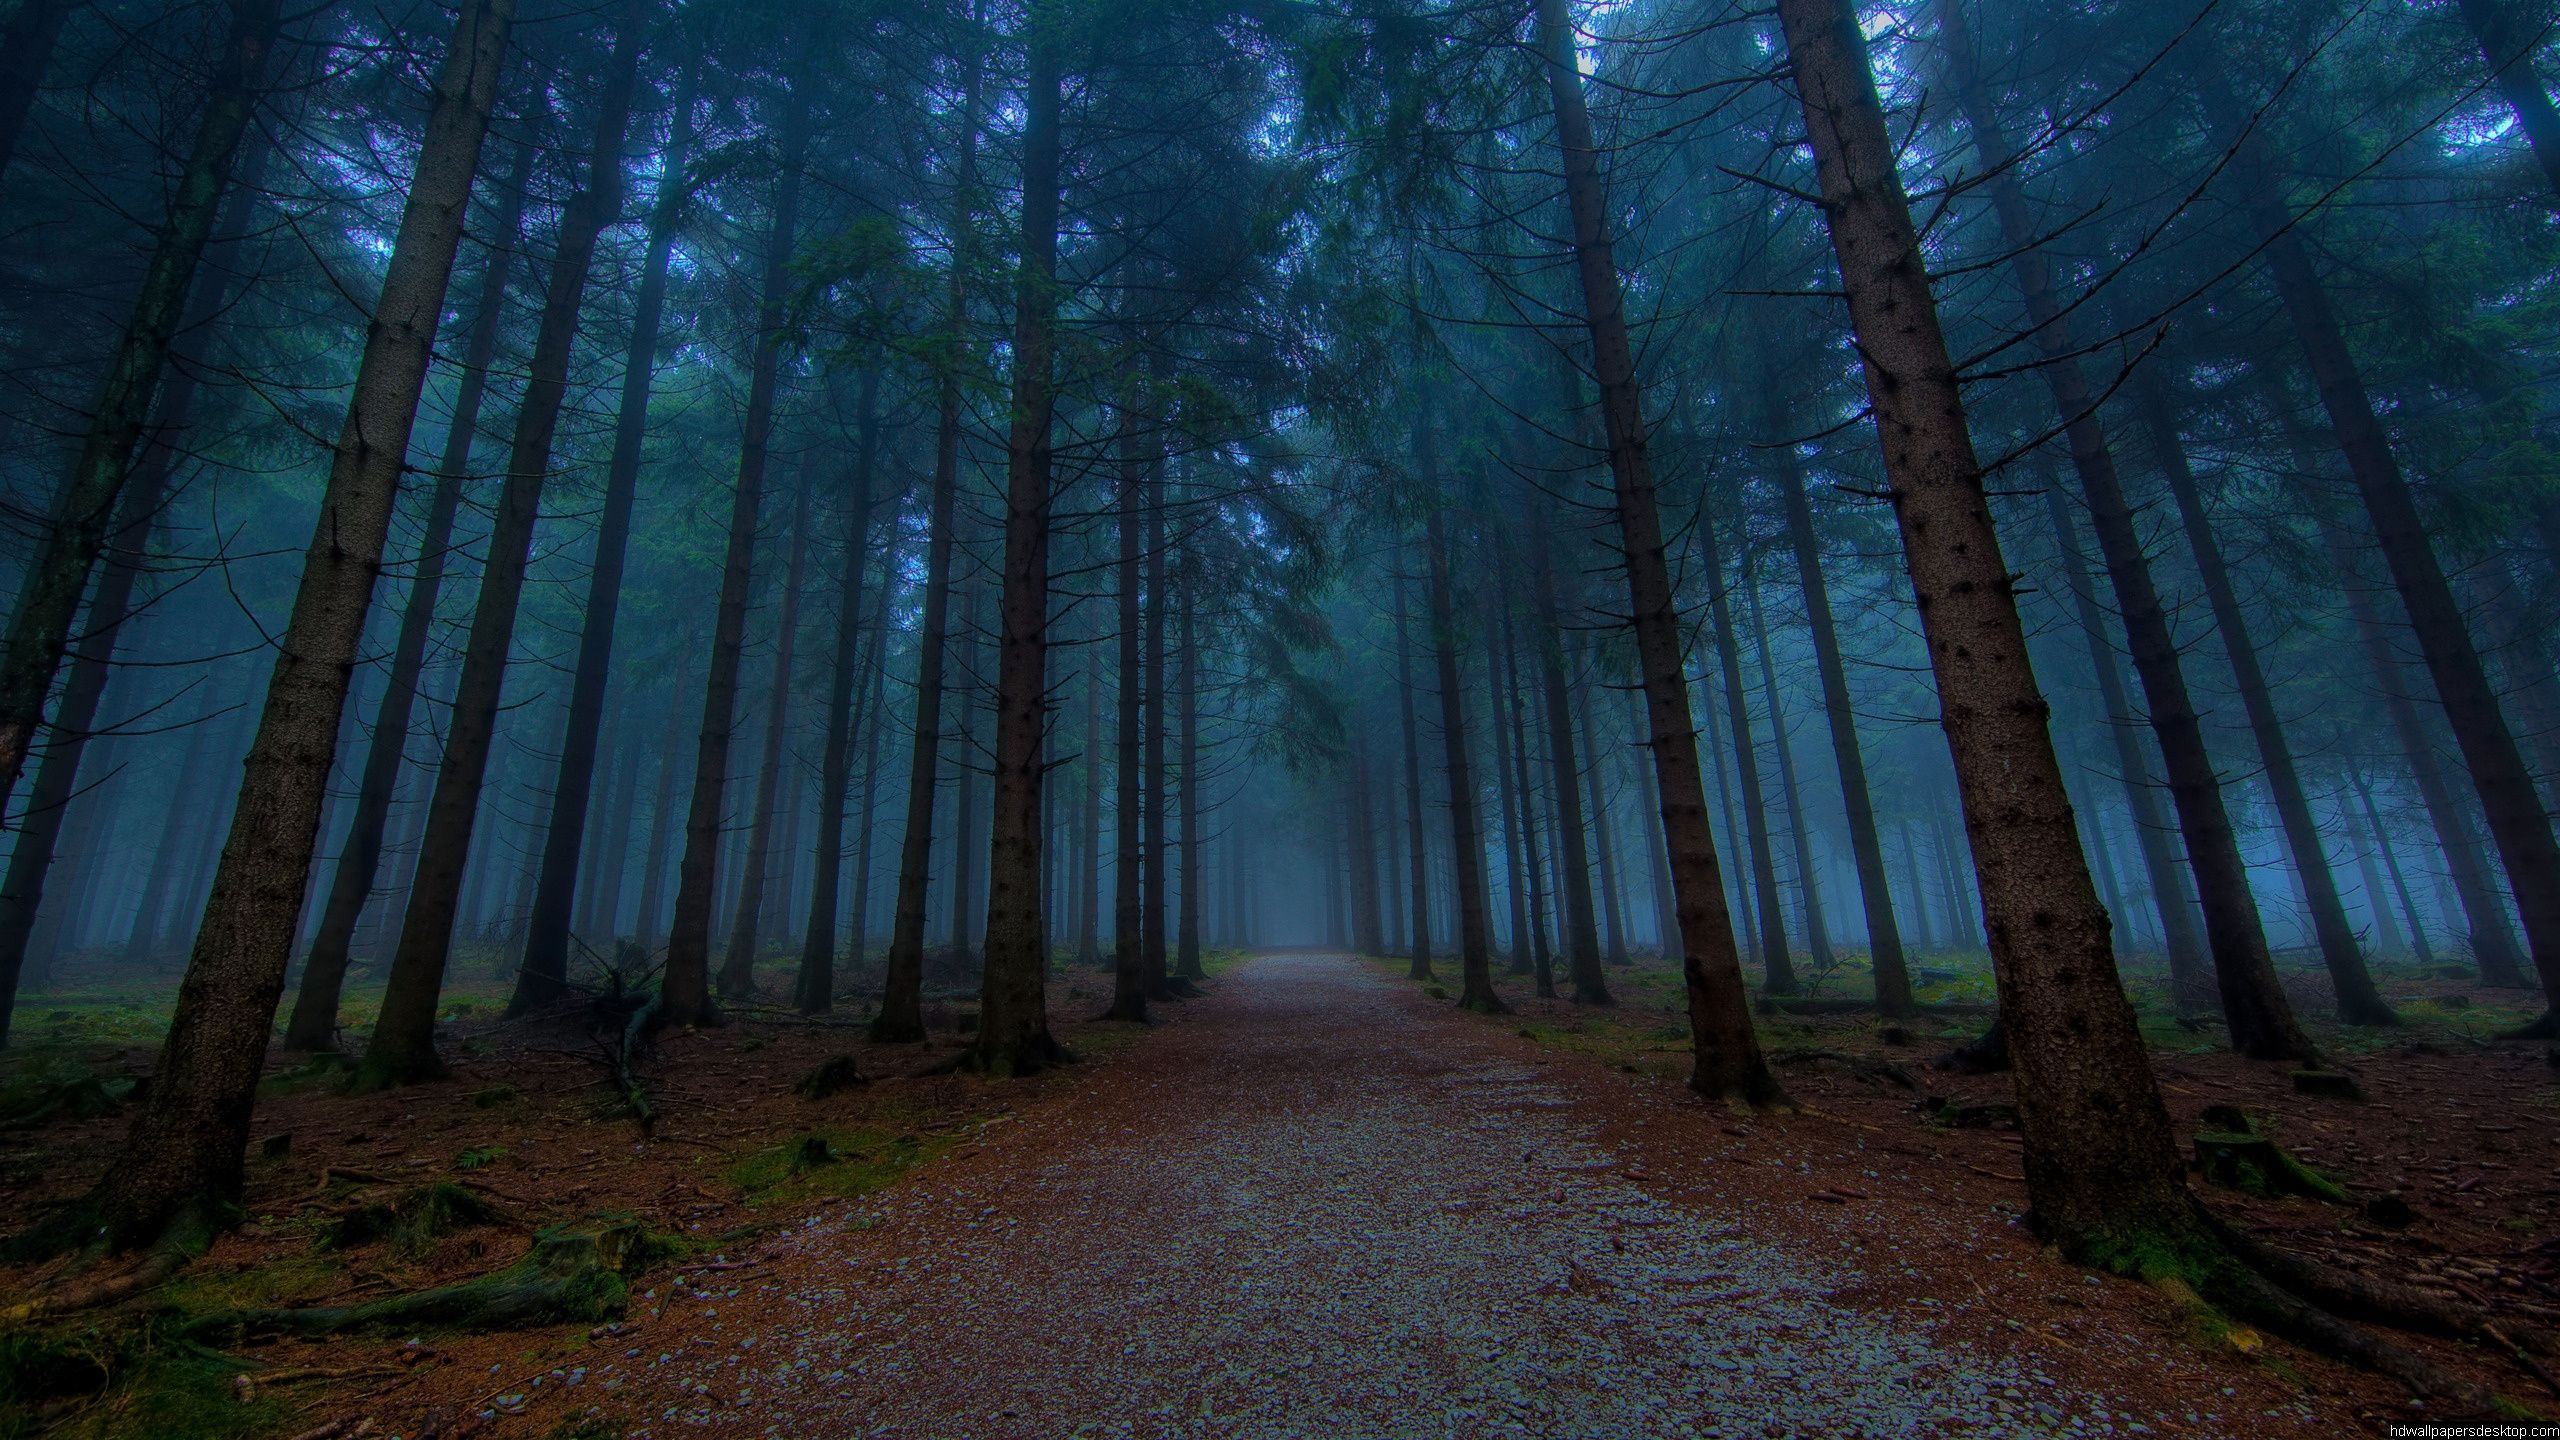 3888x2592 25 Images Nature Wallpaper Pack R Wallpapers Album On Imgur Forest Wallpaper Forest Pictures Foggy Forest